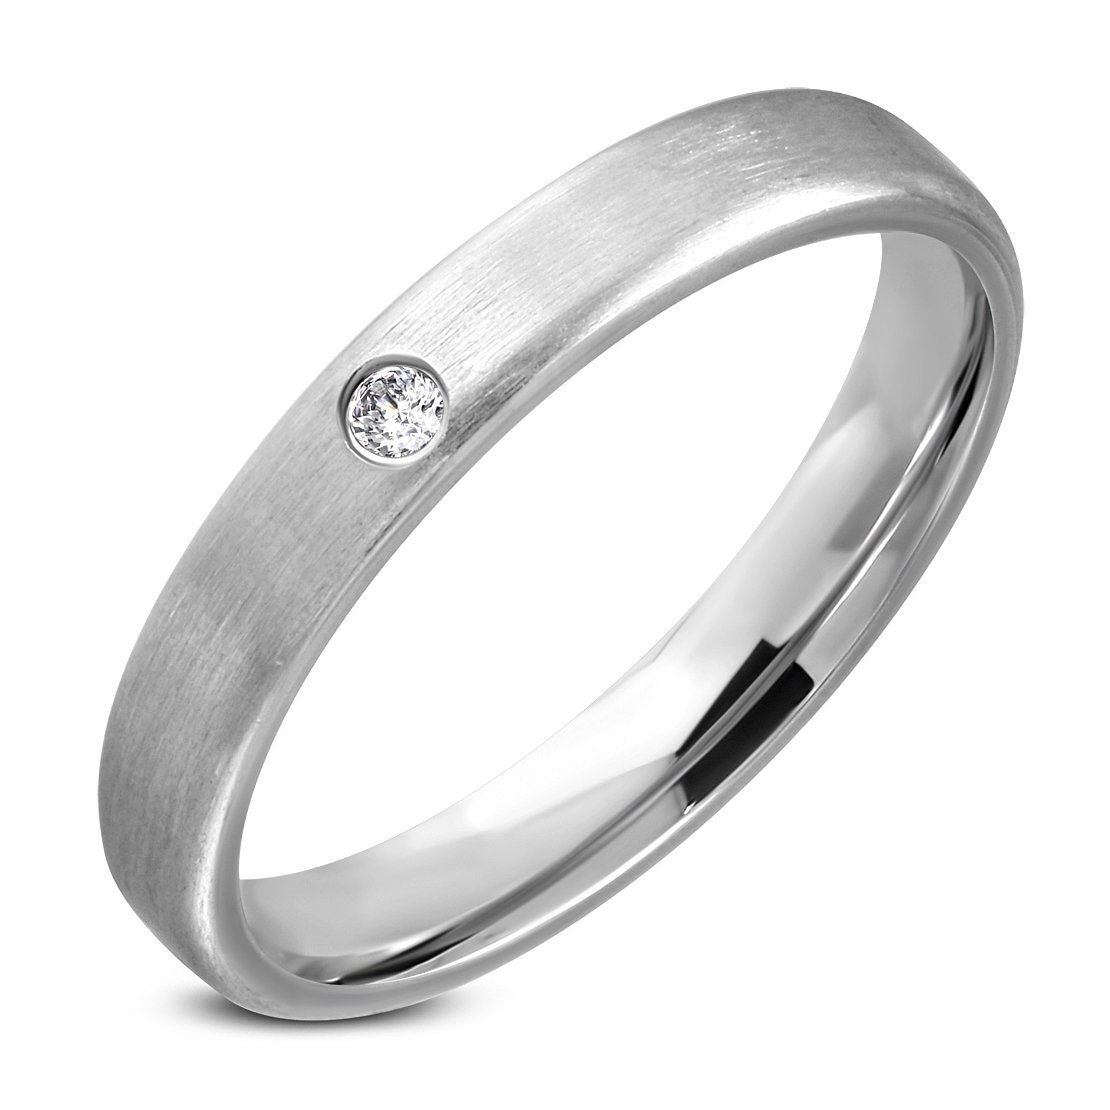 NRG Rings Stainless Steel Matte Finished Plain Comfort Fit Wedding Half-Round Band Ring with Clear CZ